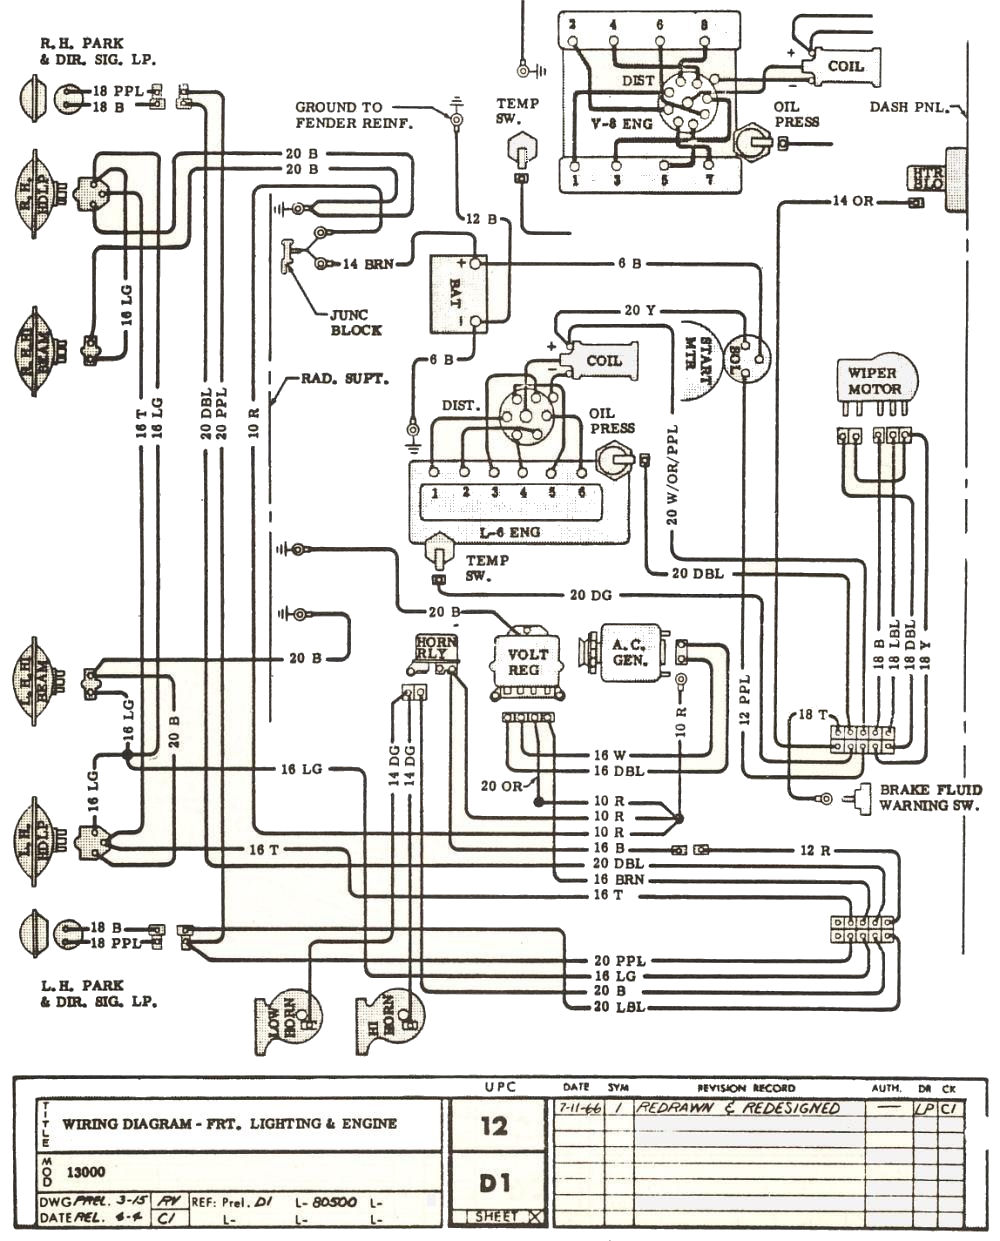 1967 Gto Engine Wiring Diagram 1970 Chevelle Wiring